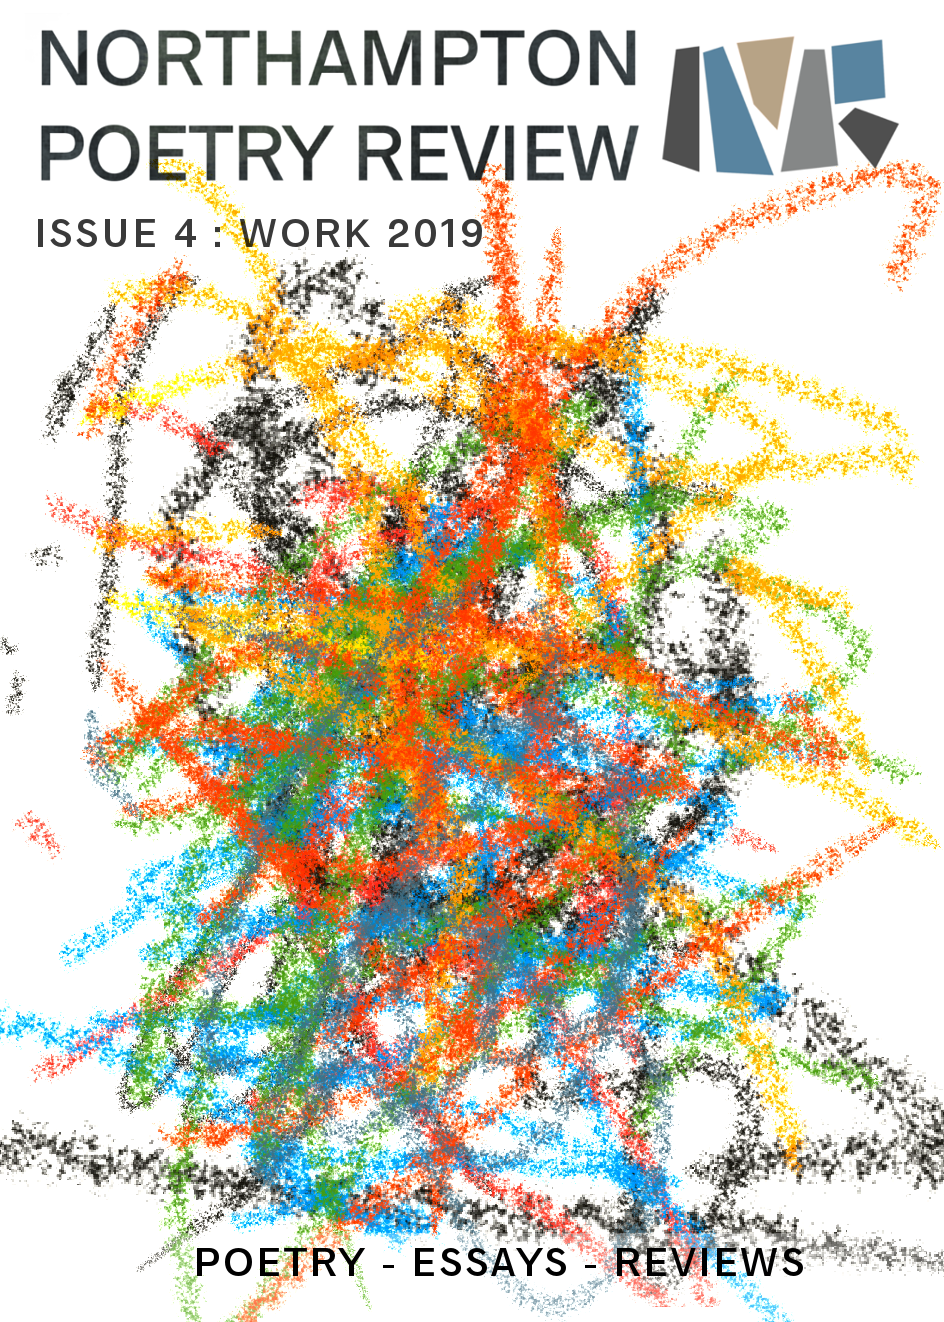 Download Northampton Poetry Review Issue 4: WORK 2019 [.PDF] by clicking on the cover image.  Or read via issuu below